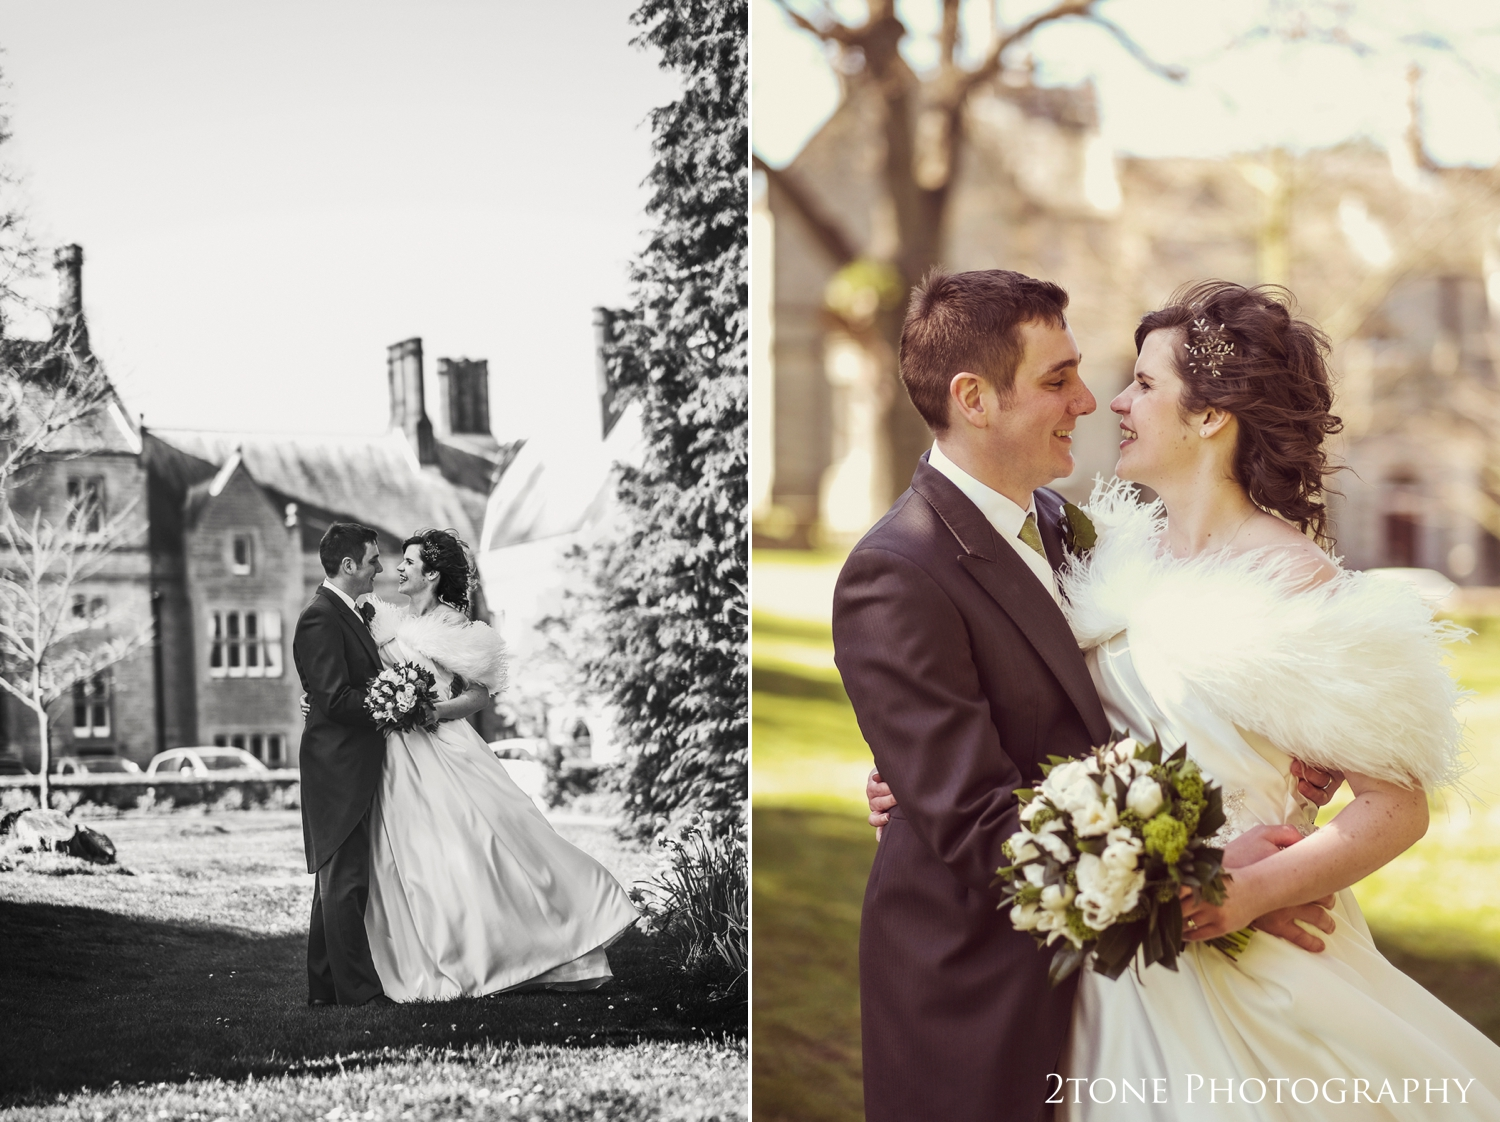 The springtime light was stunning for Emma and David's wedding day.